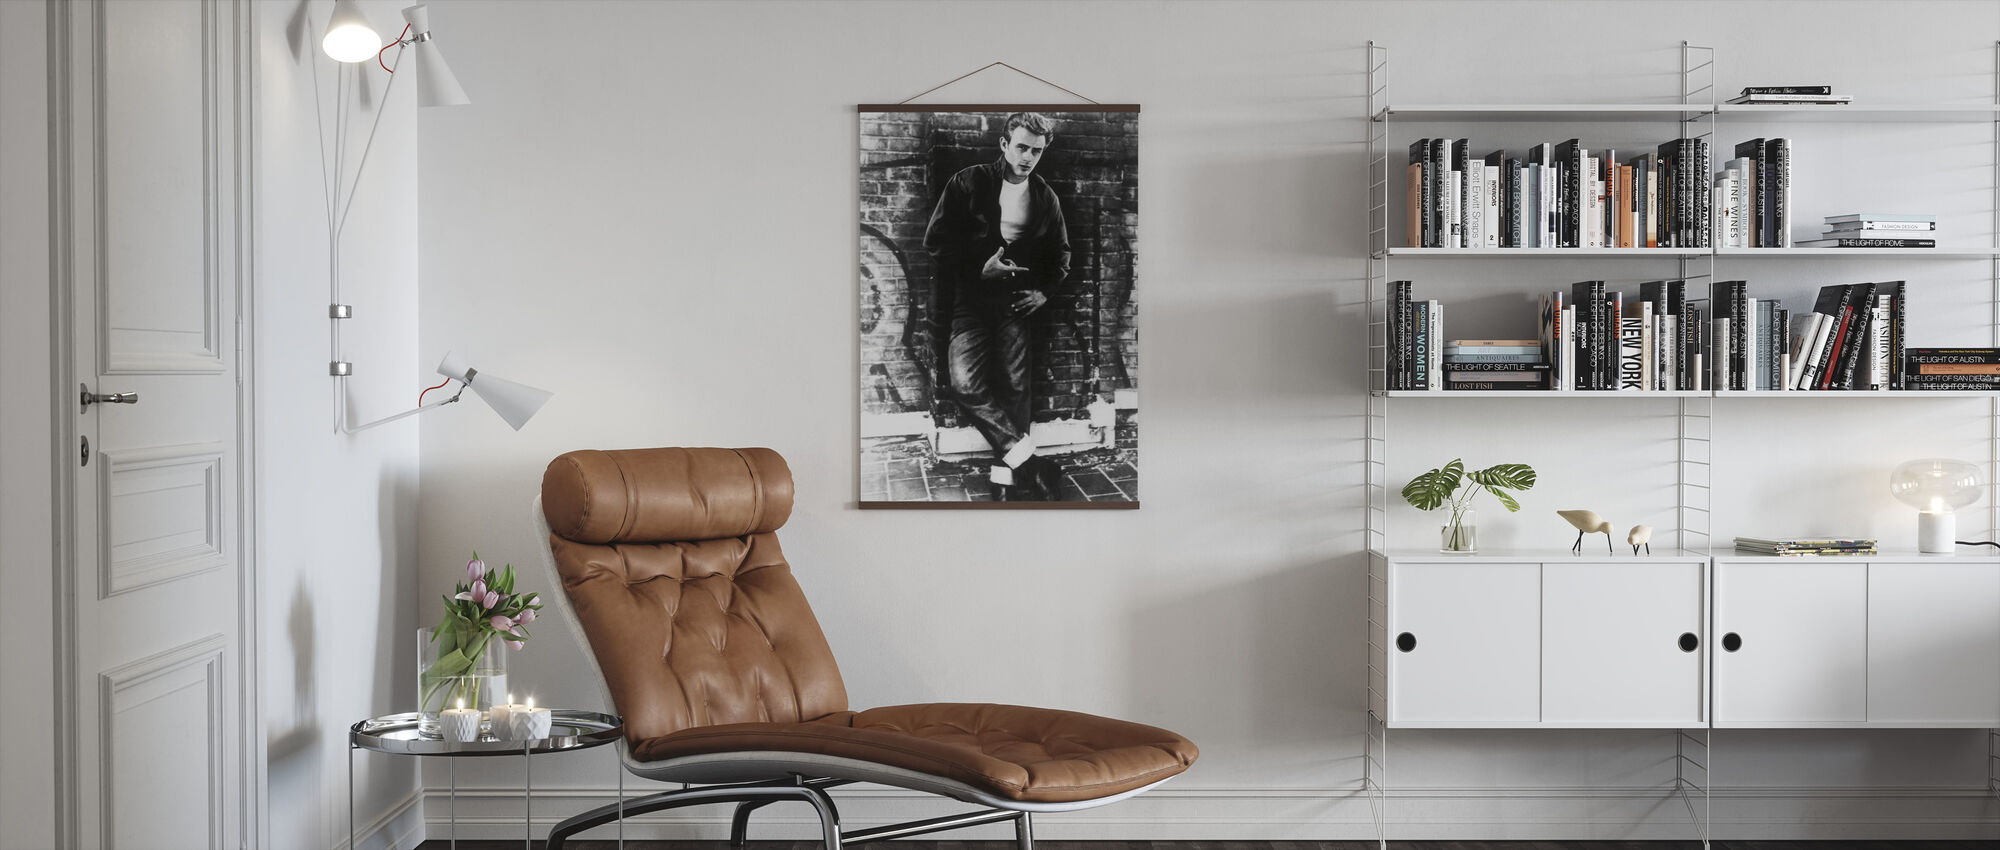 James Dean in Rebel Without a Cause - Poster - Living Room